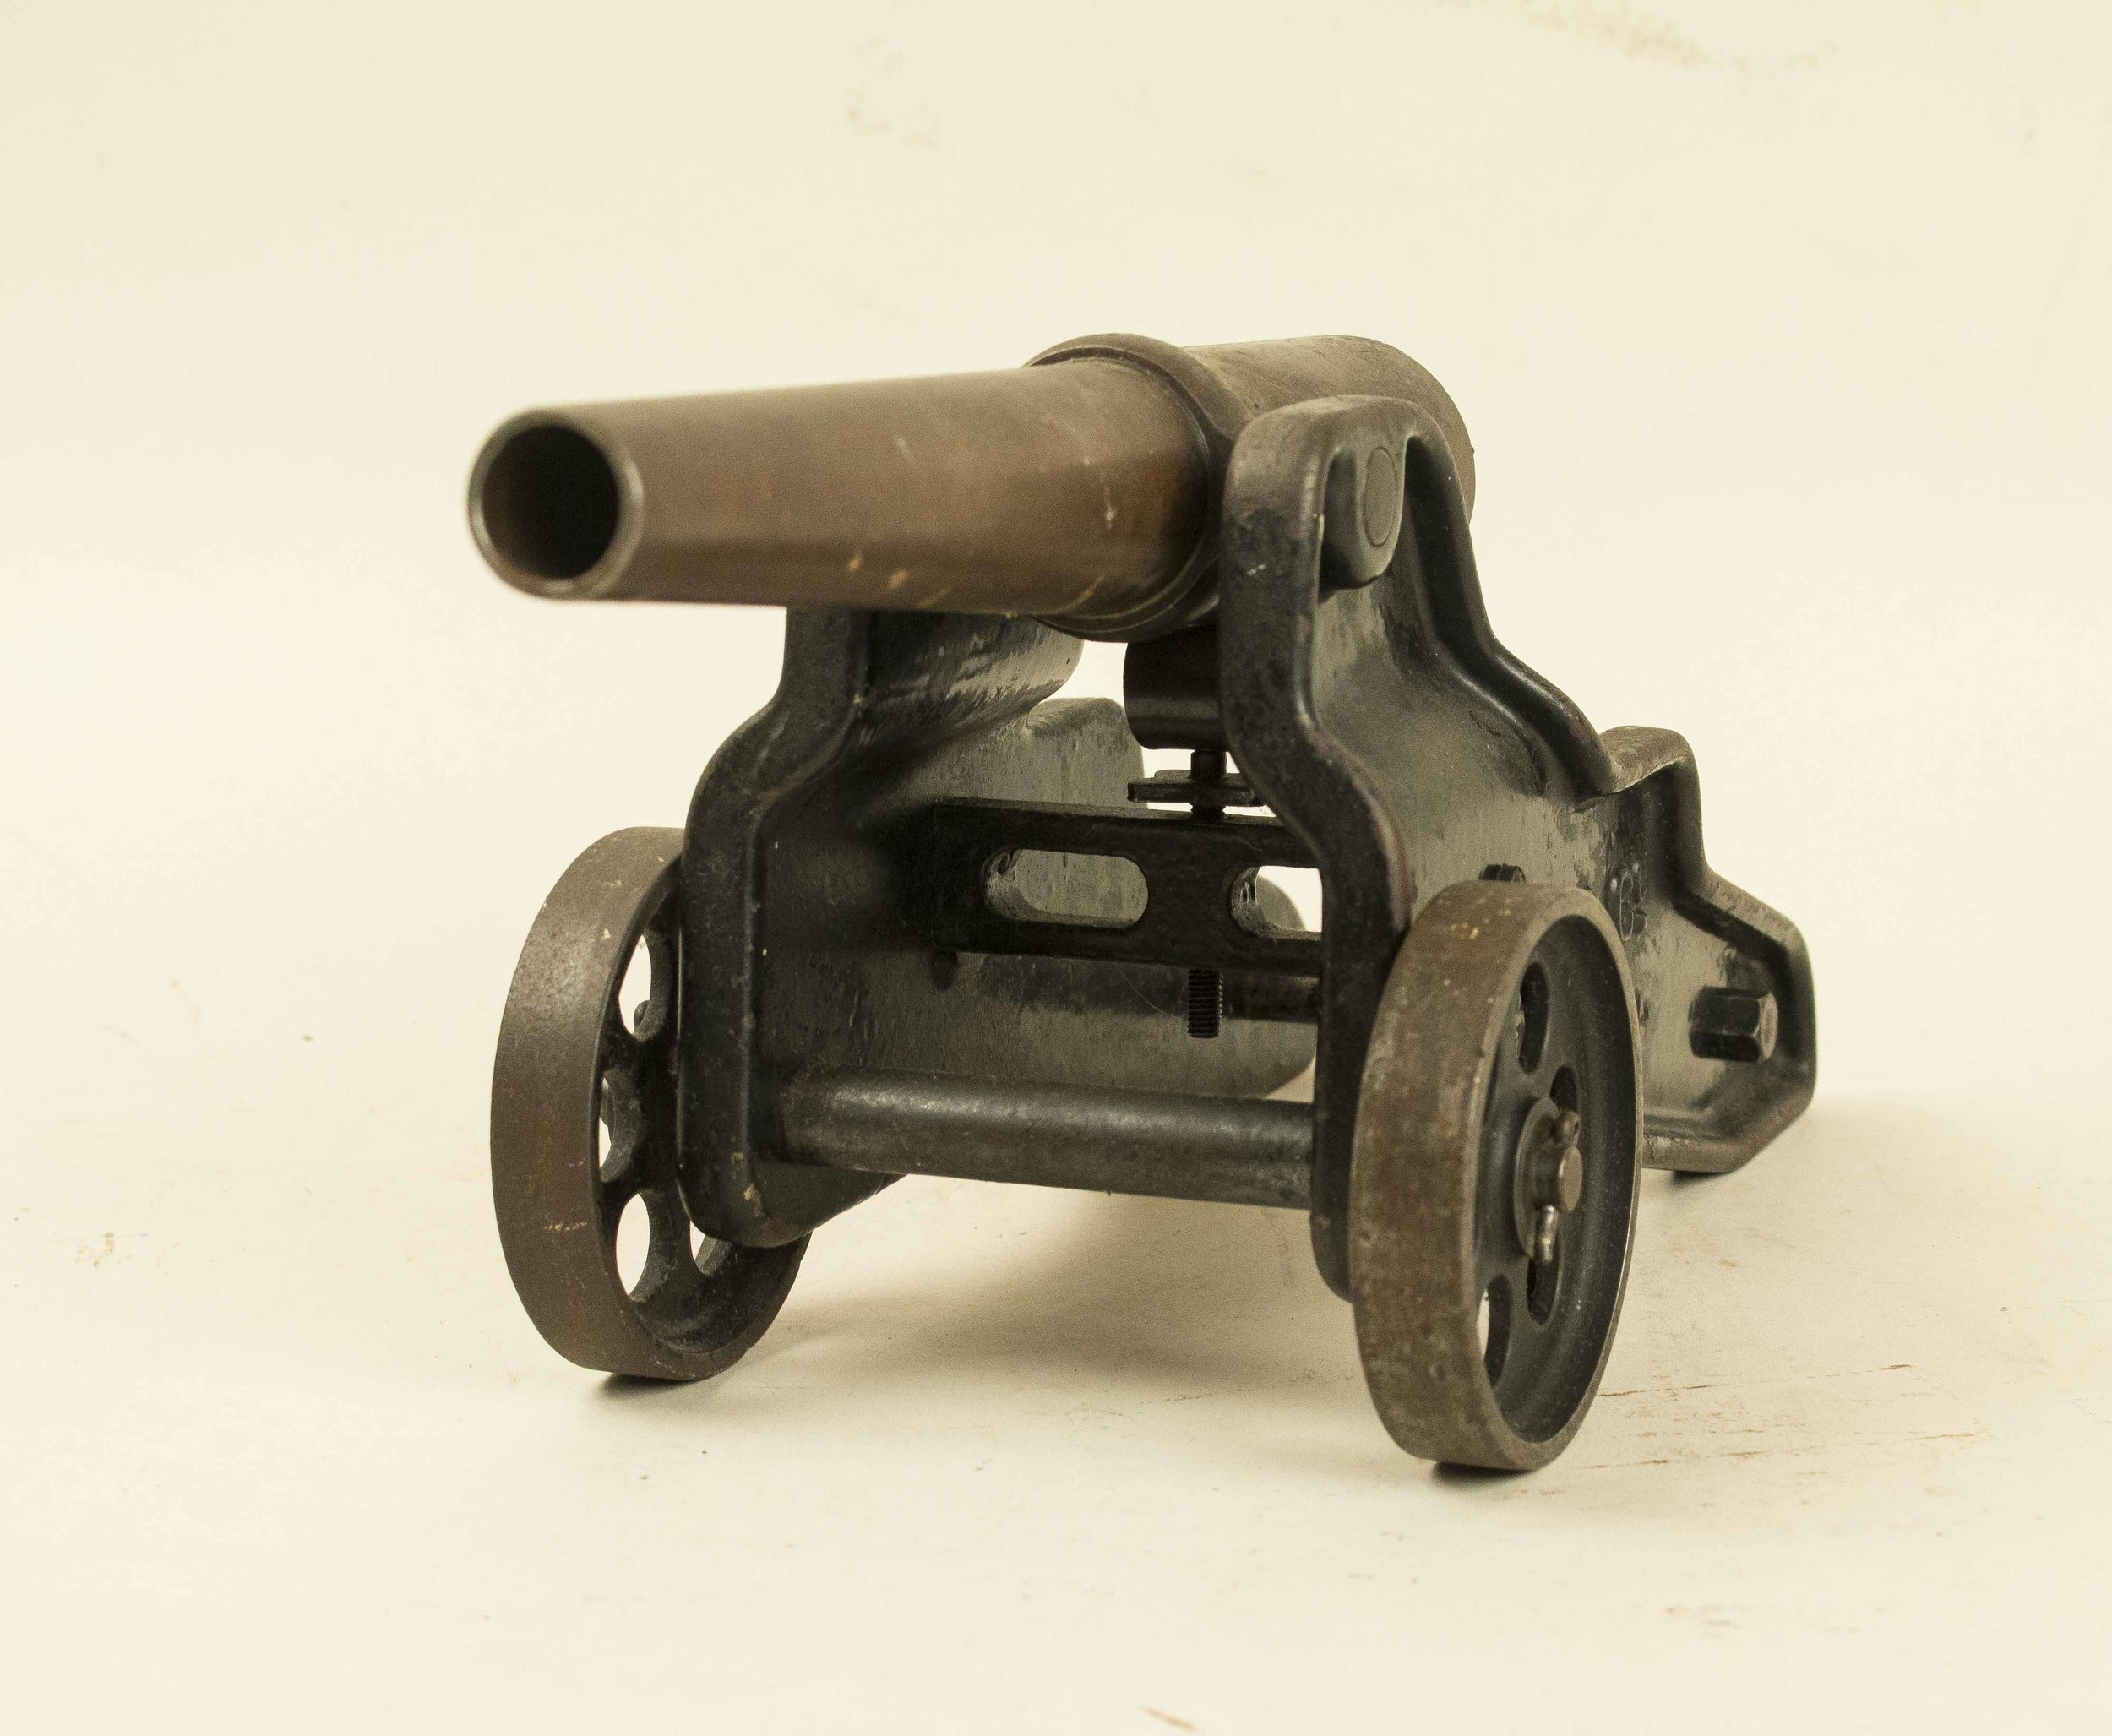 Winchester Signal Cannon | Witherell's Auction House